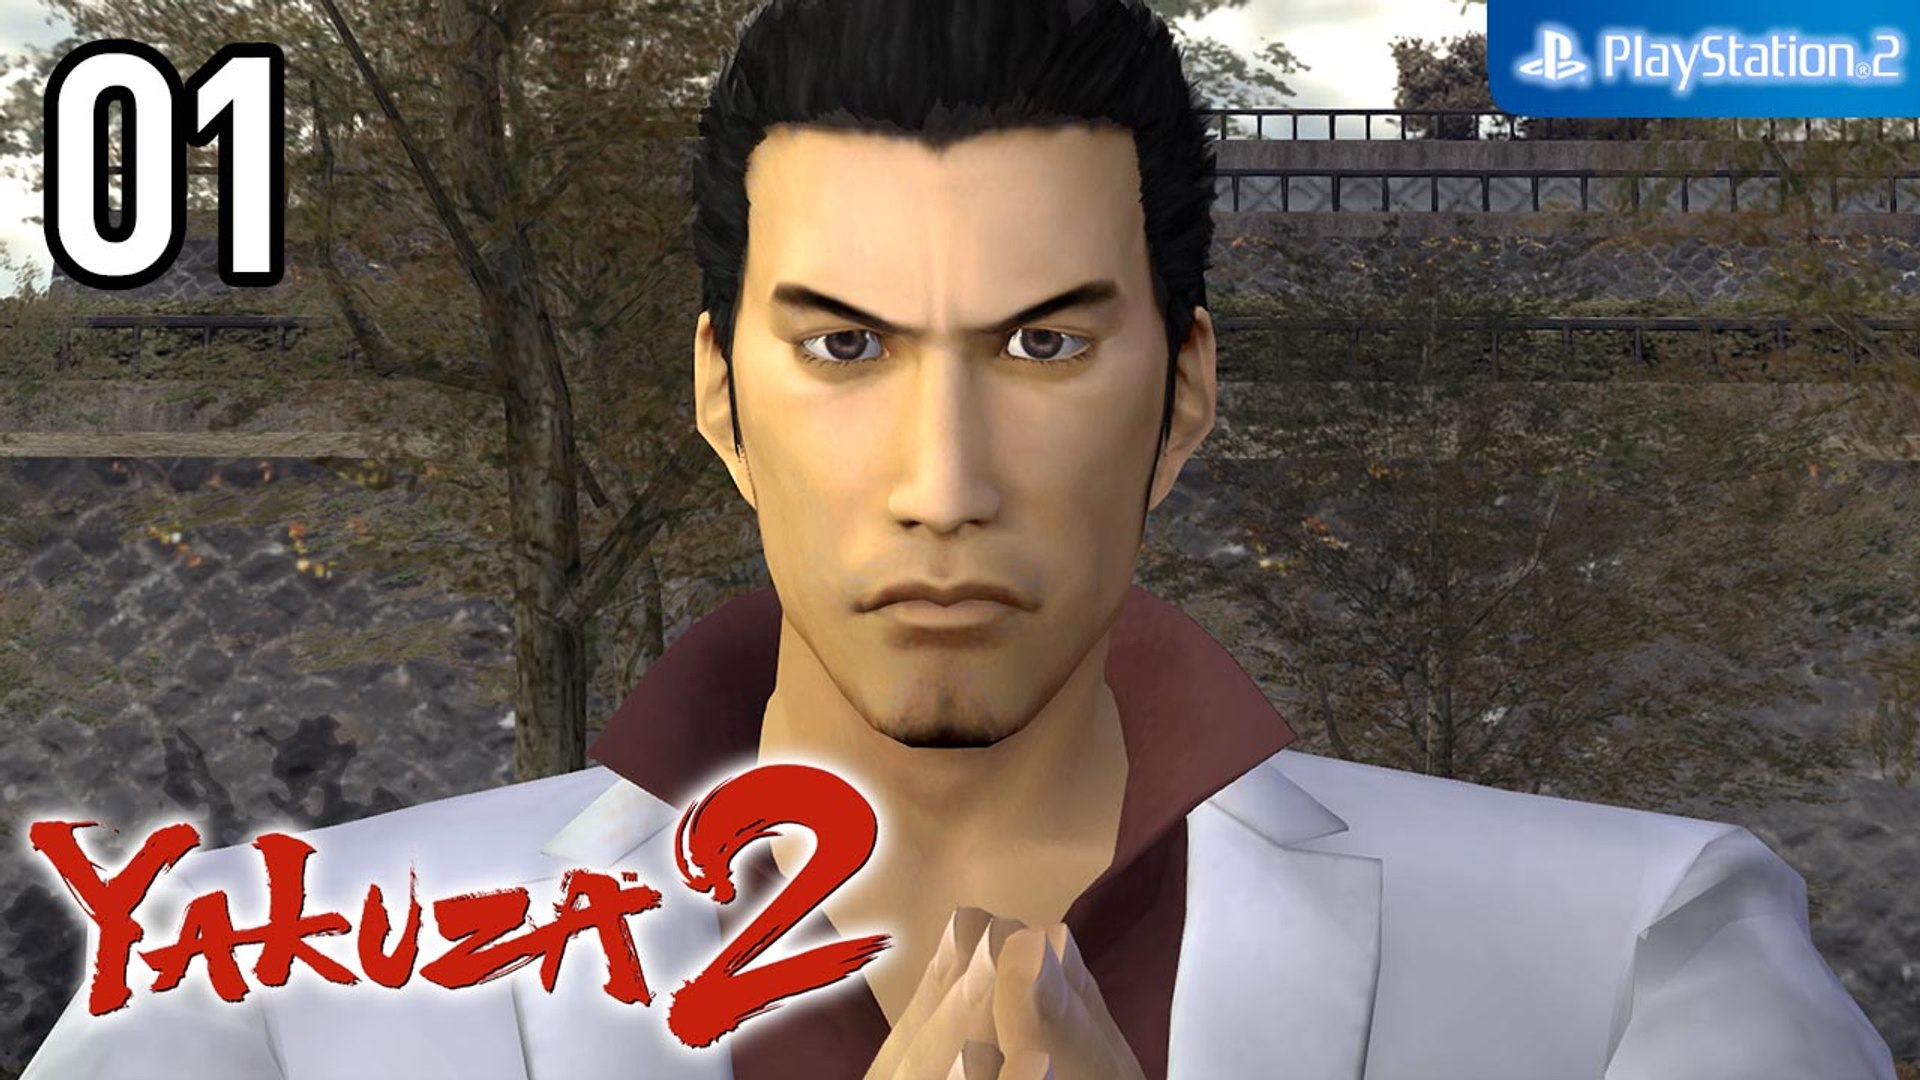 Yakuza 2 【PS2│PCSX2】 #01 │ Opening - Chapter 1 - The Bloodstained Note (Story Recap)